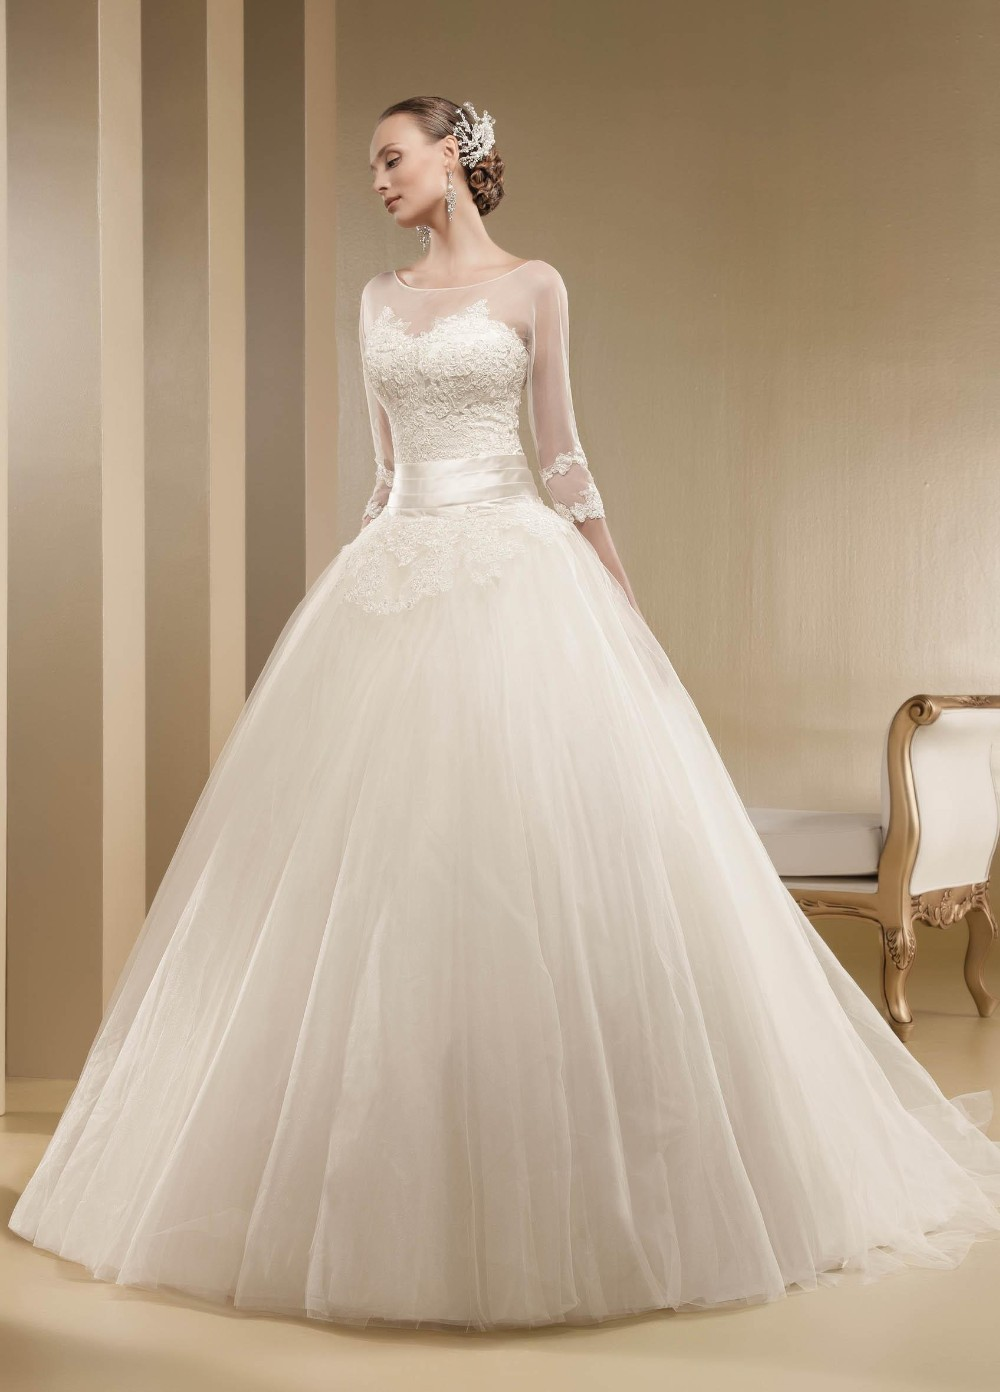 grandeur princess style custom made fluffy wedding dress half sleeve scoop lace up back with